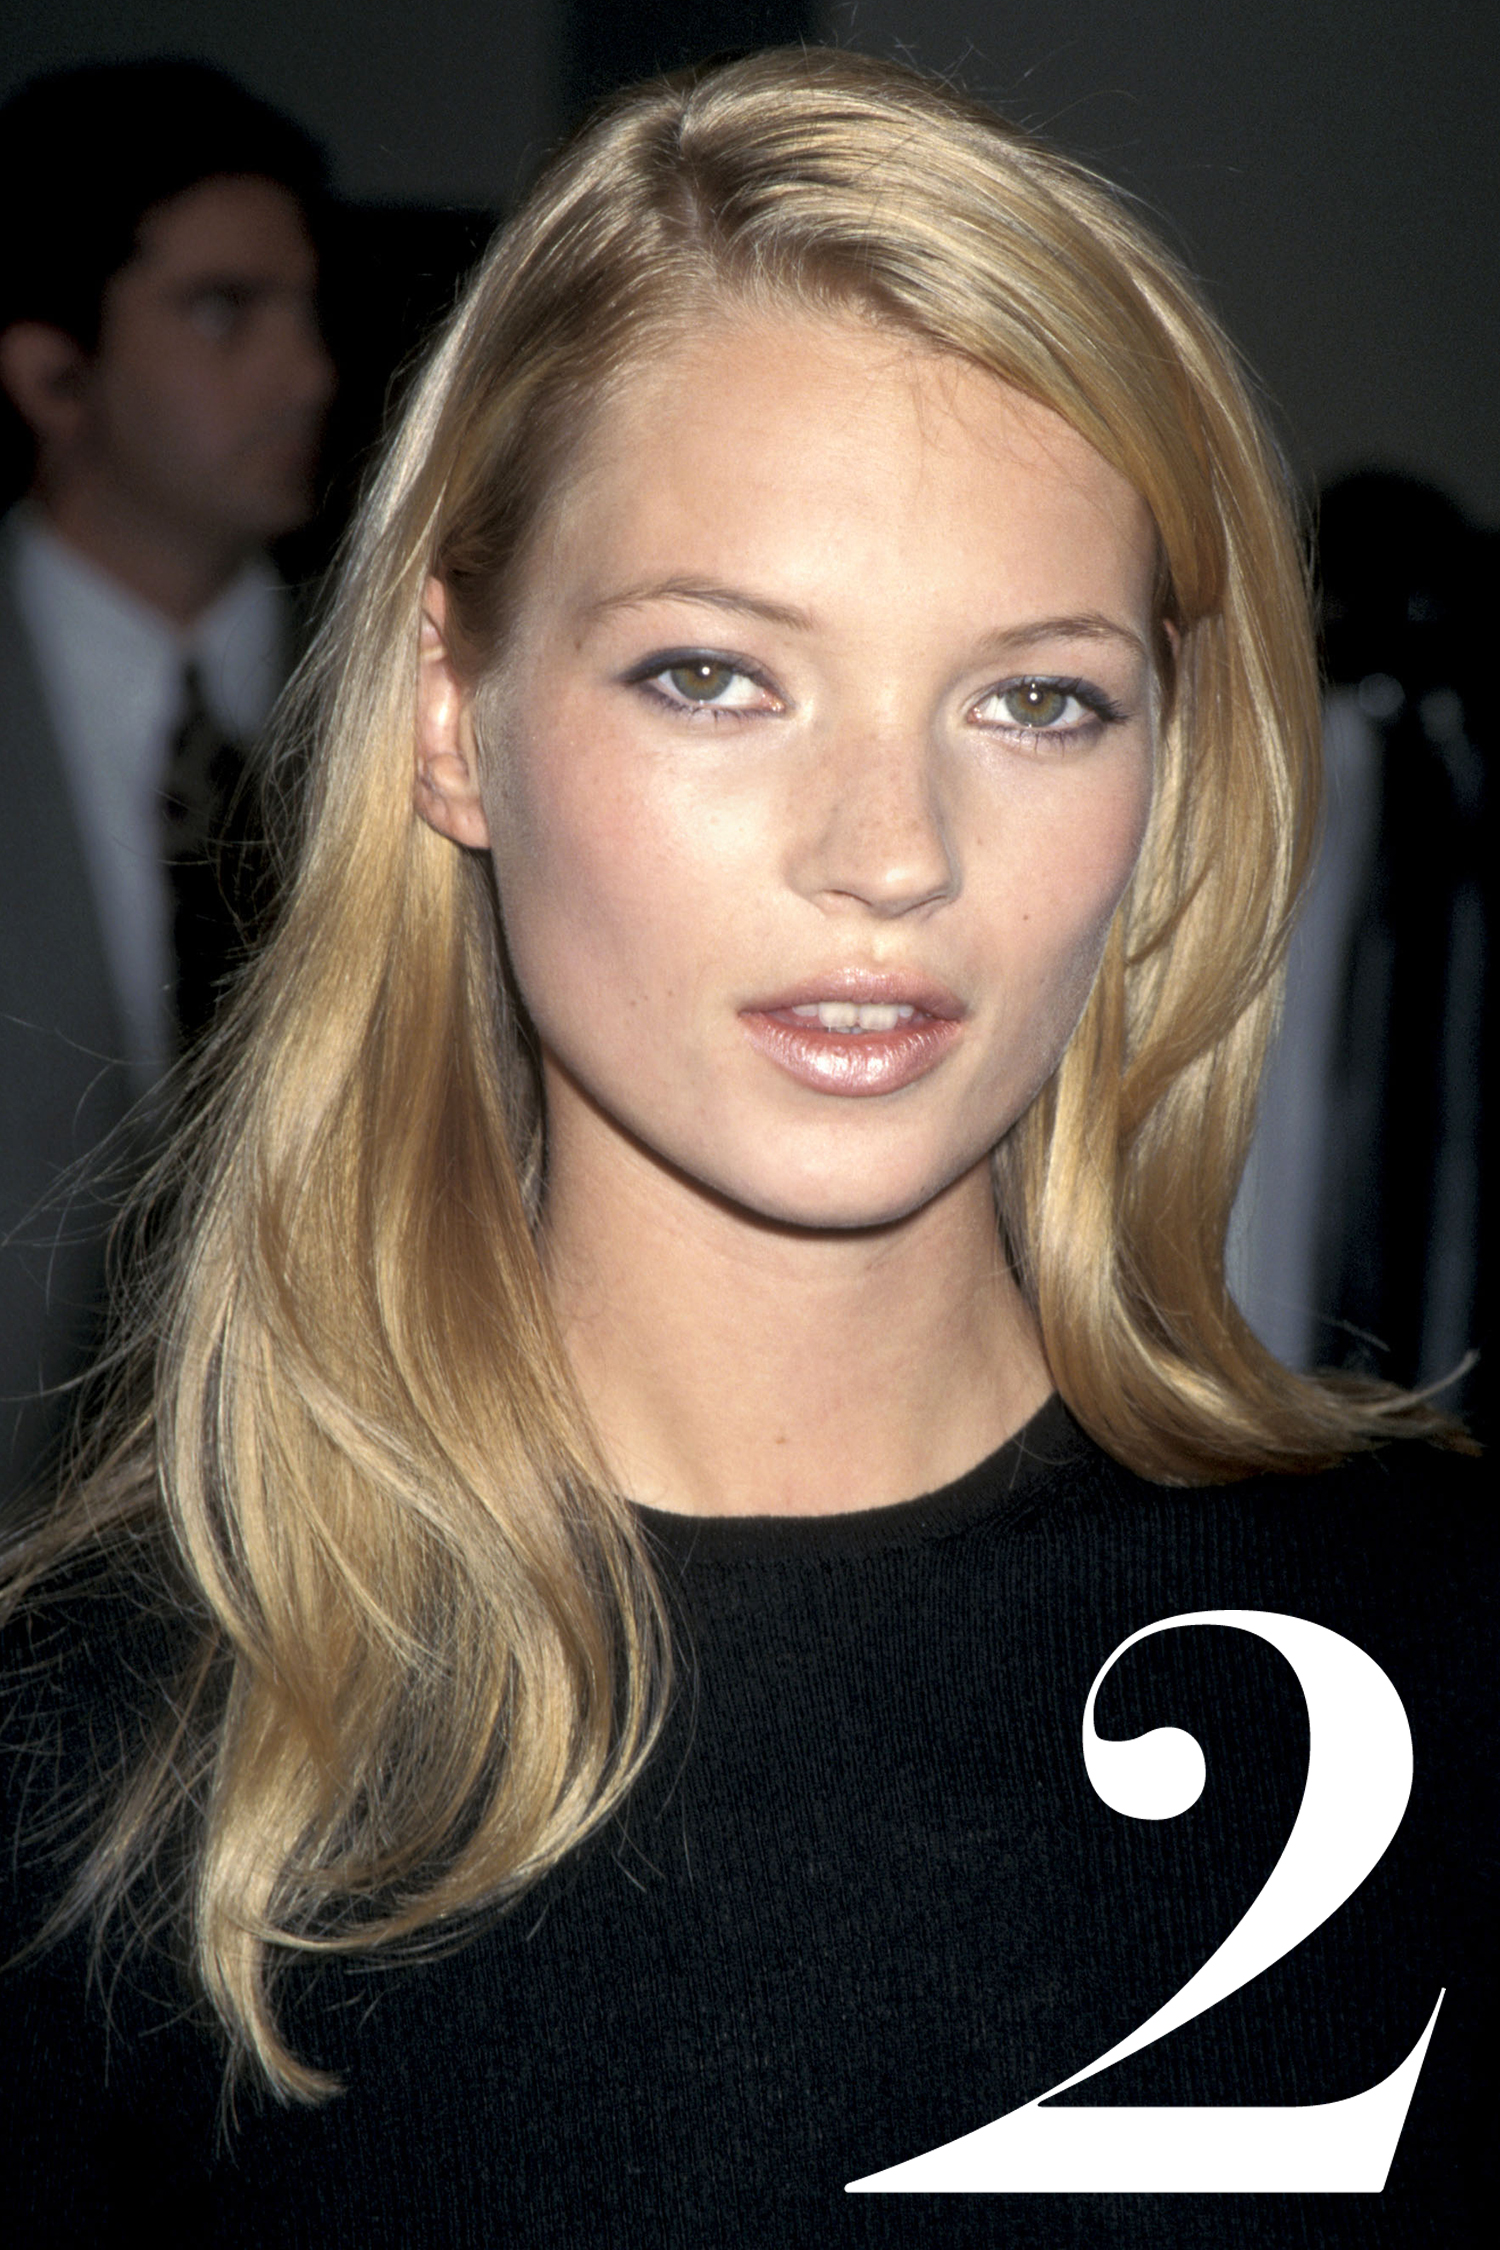 Beauty Icons of the 90s - Best Nineties Supermodels and ...   1500 x 2250 jpeg 1948kB